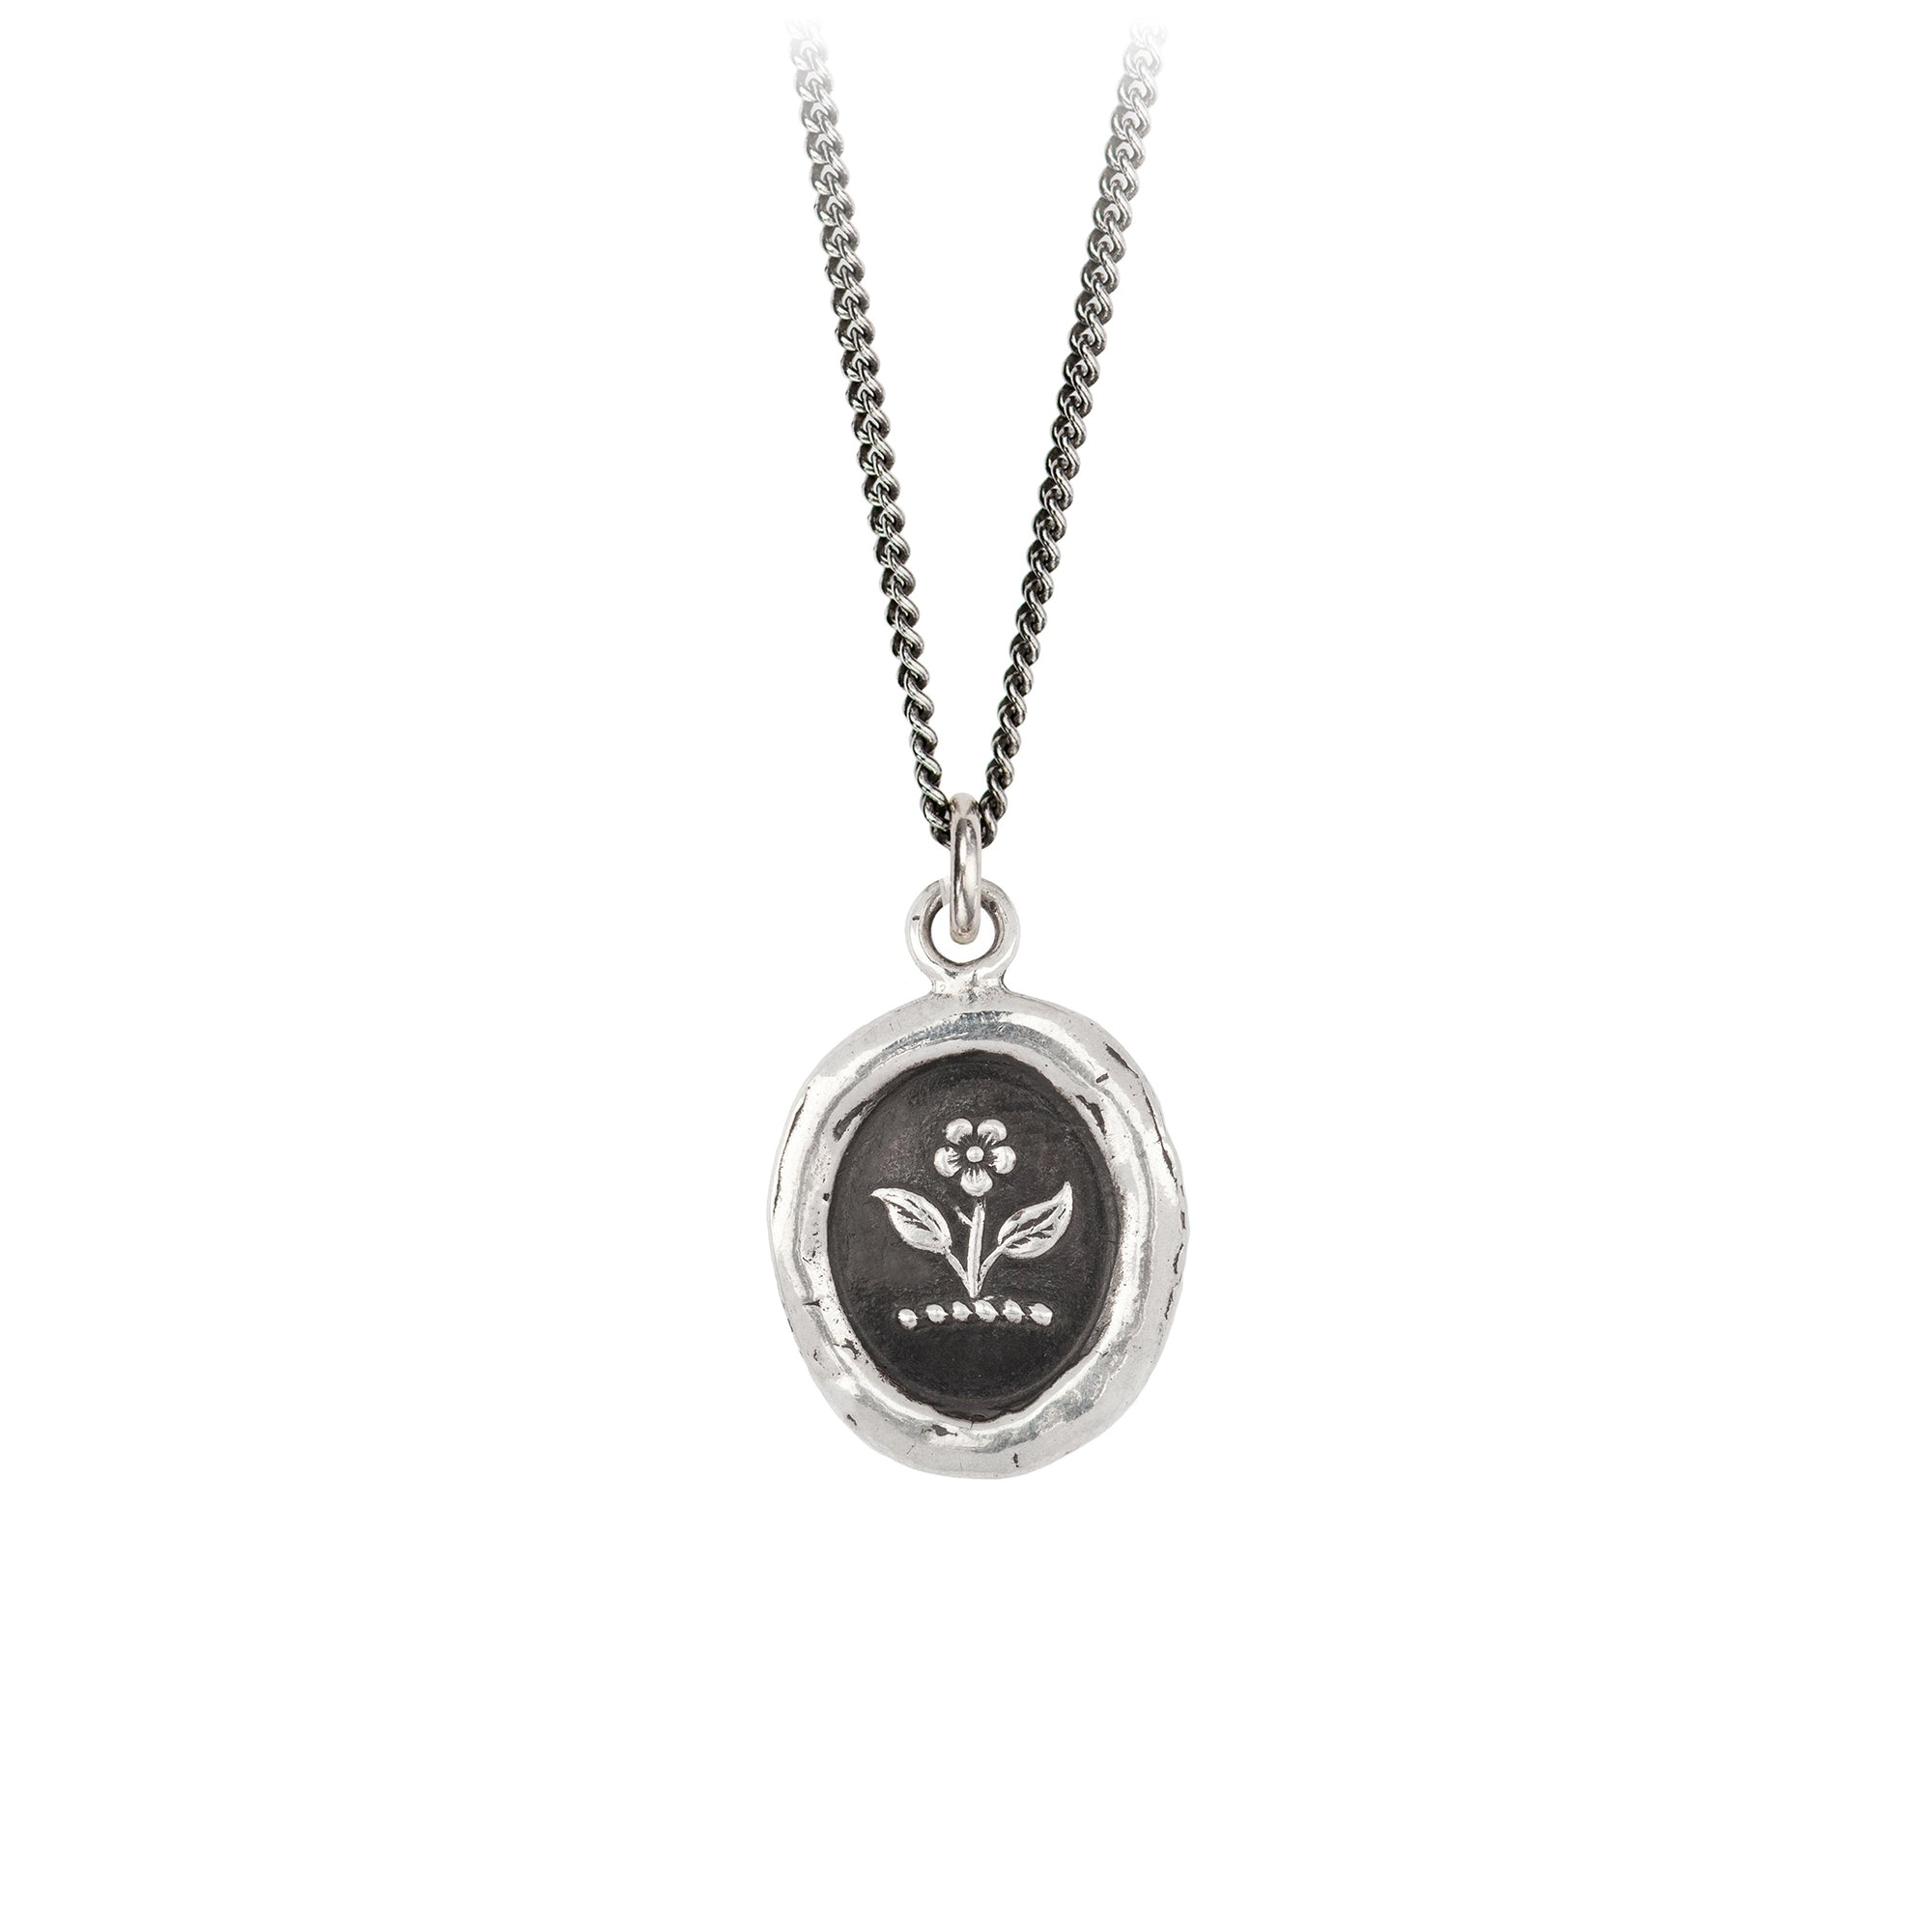 Pyrrha Beauty and Strength Talisman Necklace Silver